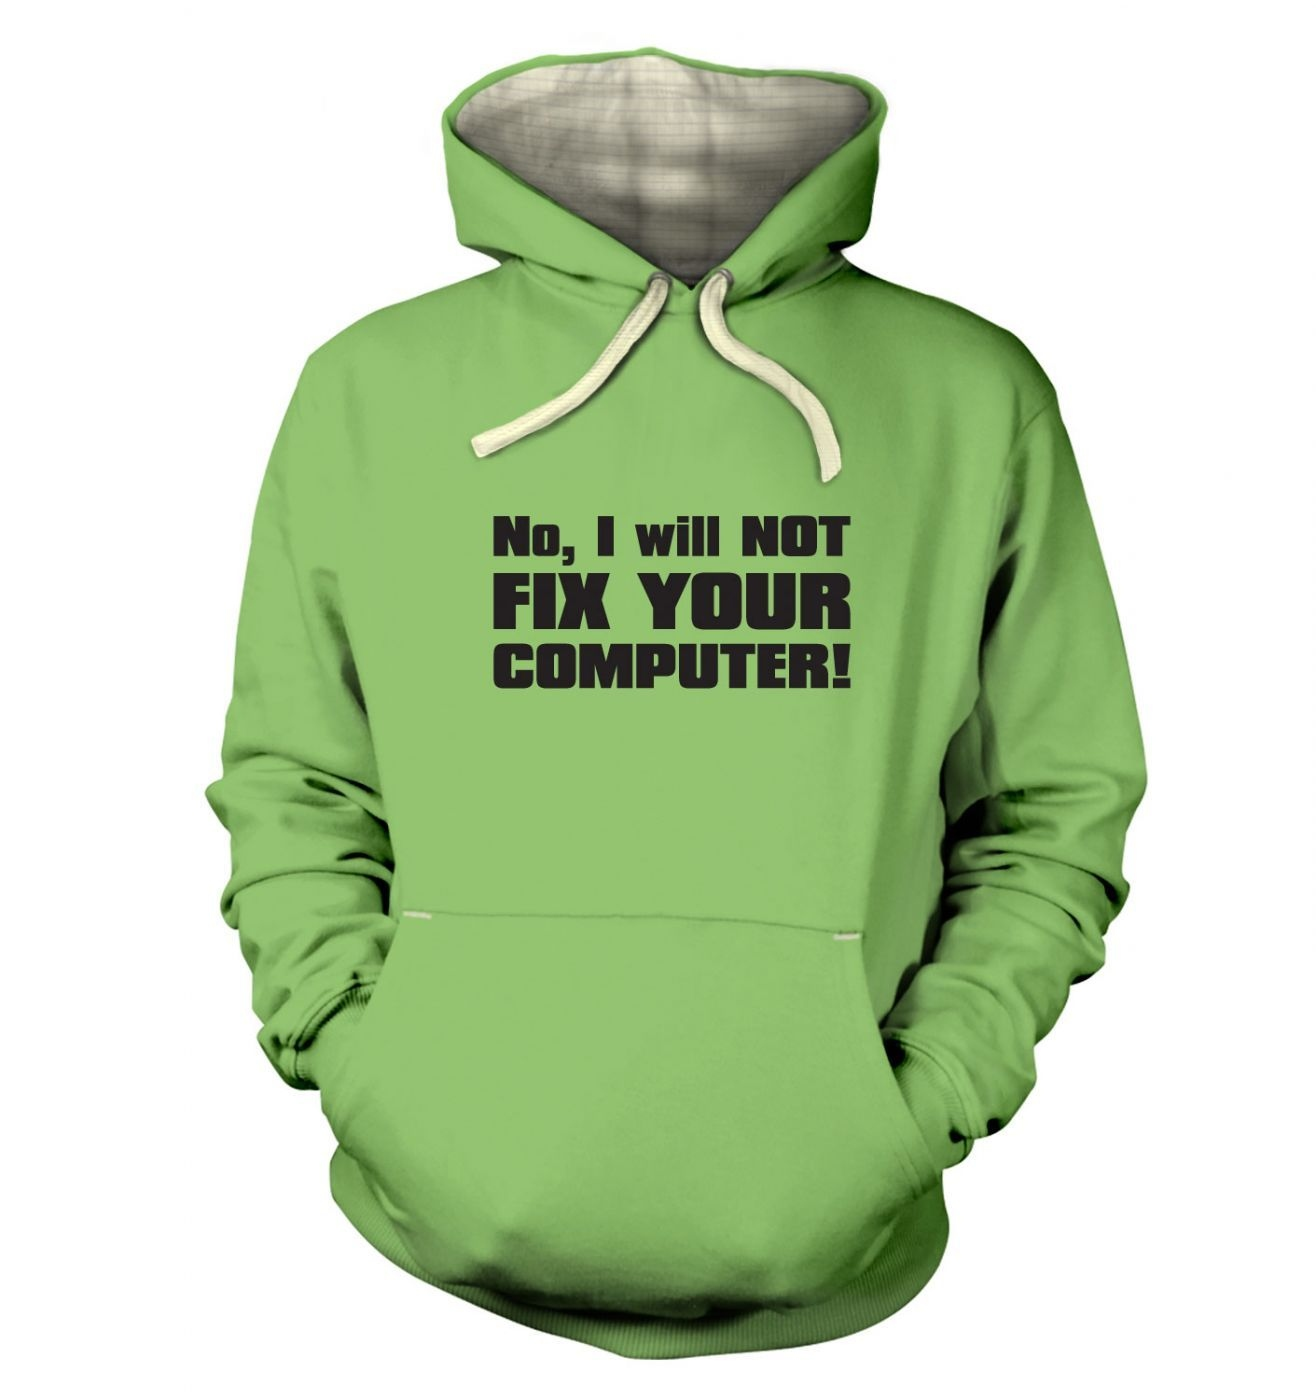 I Will NOT Fix Your Computer premium hoodie